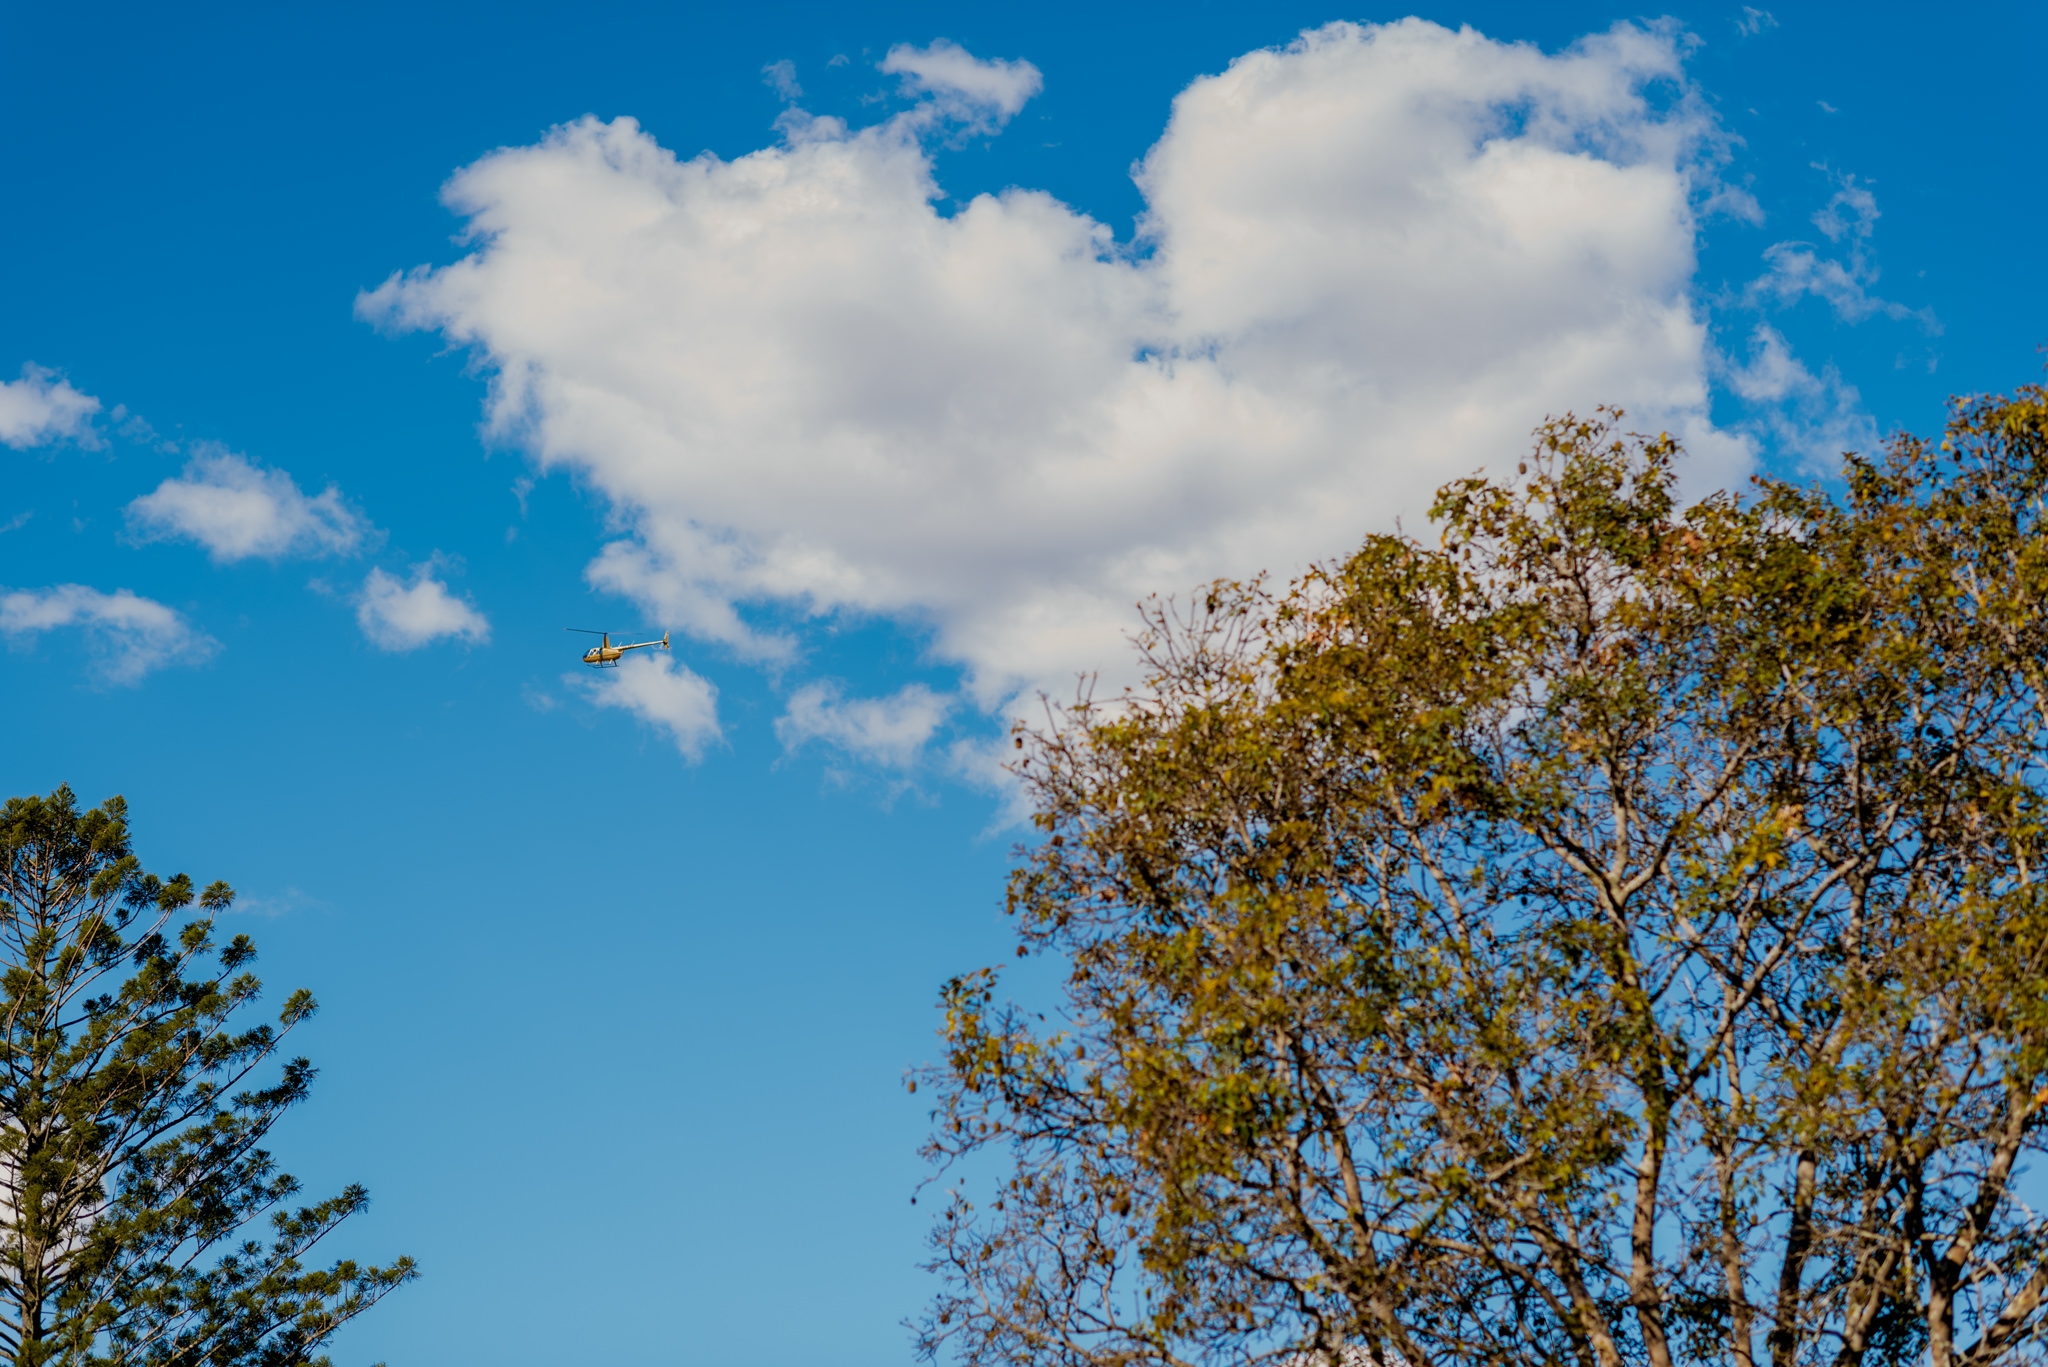 A small helicopter flies through the sky above gum trees